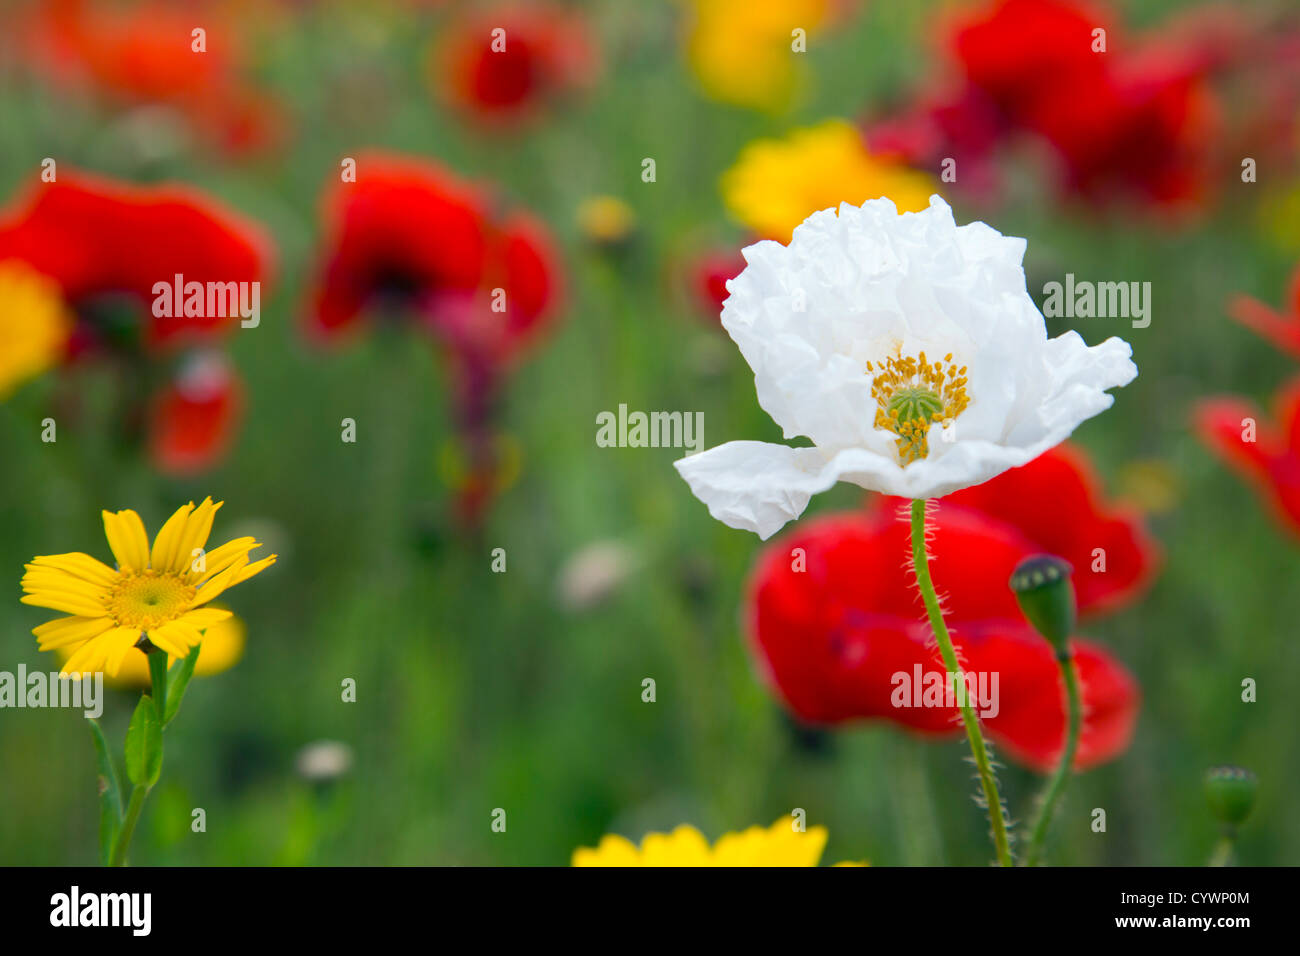 Poppies; Papaver rhoeas; West Pentire; Cornwall; UK; White Poppy - Stock Image